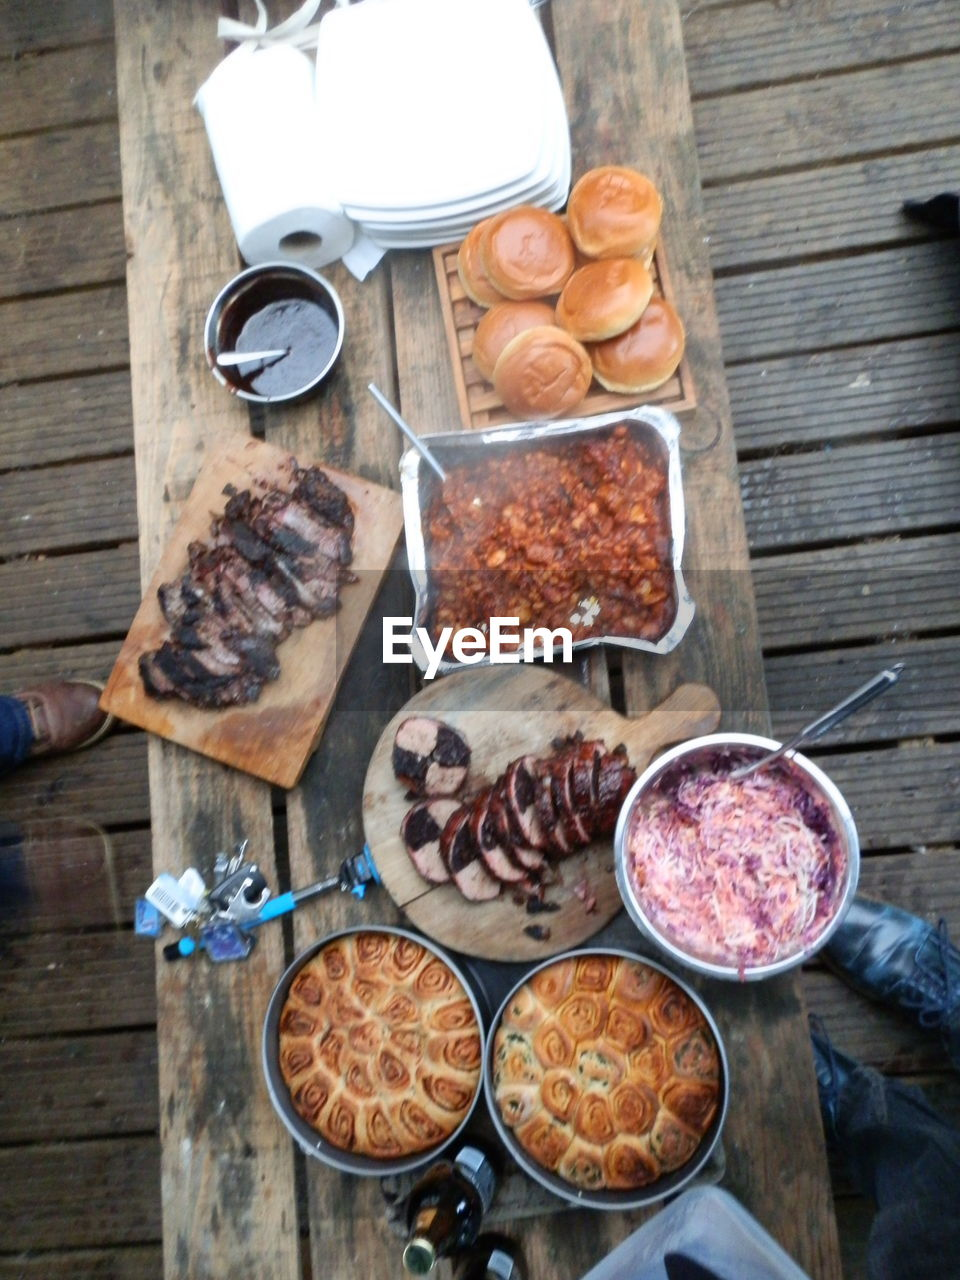 food and drink, food, freshness, drink, directly above, refreshment, table, high angle view, healthy eating, wood - material, choice, meat, kitchen utensil, wellbeing, variation, meal, bowl, plate, no people, spoon, glass, outdoors